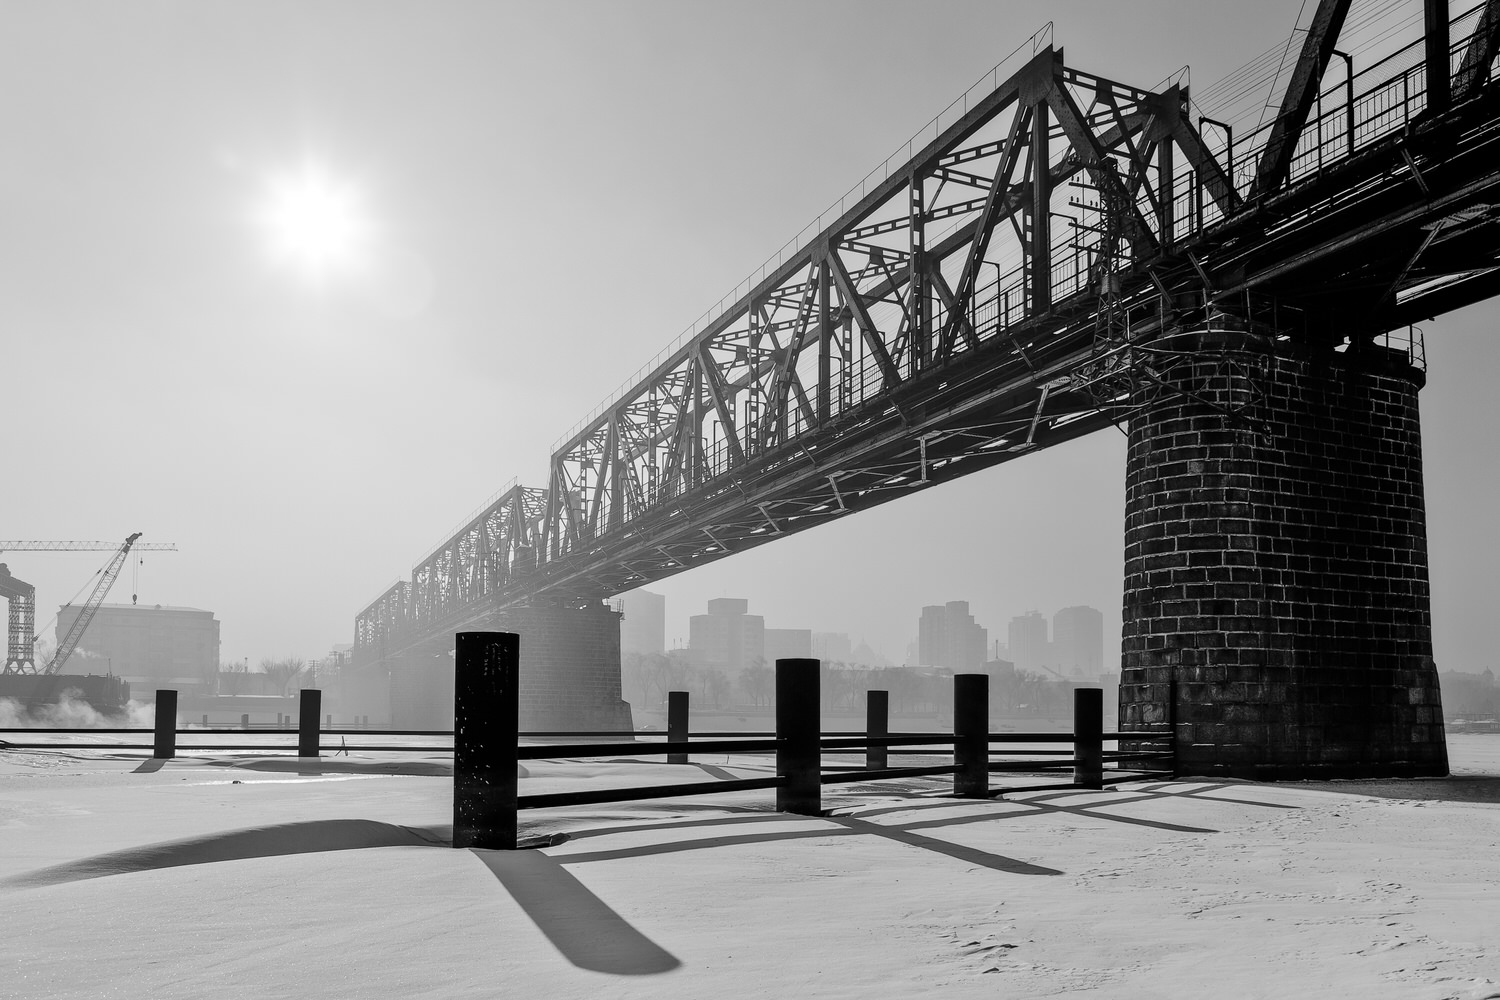 A rail bridge, photographed against intense backlighting, on an overcast winter's day in    Harbin, China   . The strong graphic shapes and shadows make for a dramatic image.